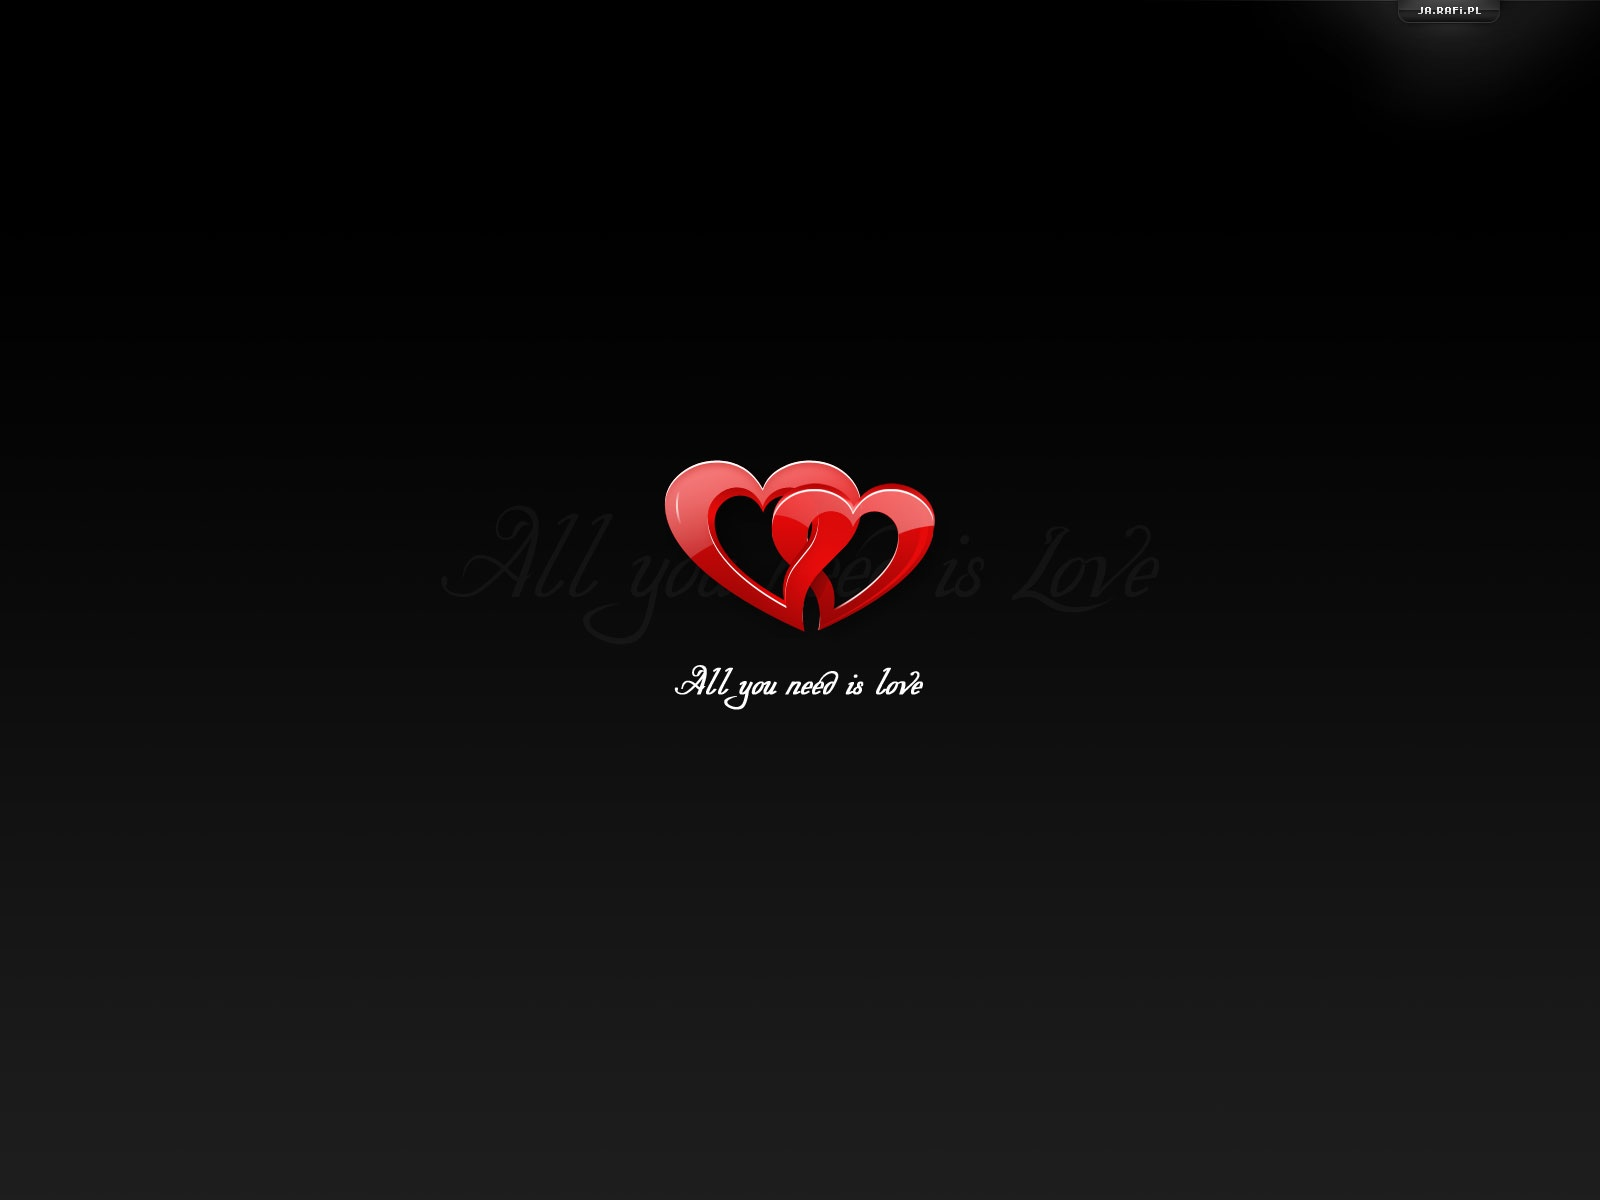 1600x1200 All you need is love desktop Pc and Mac wallpaper